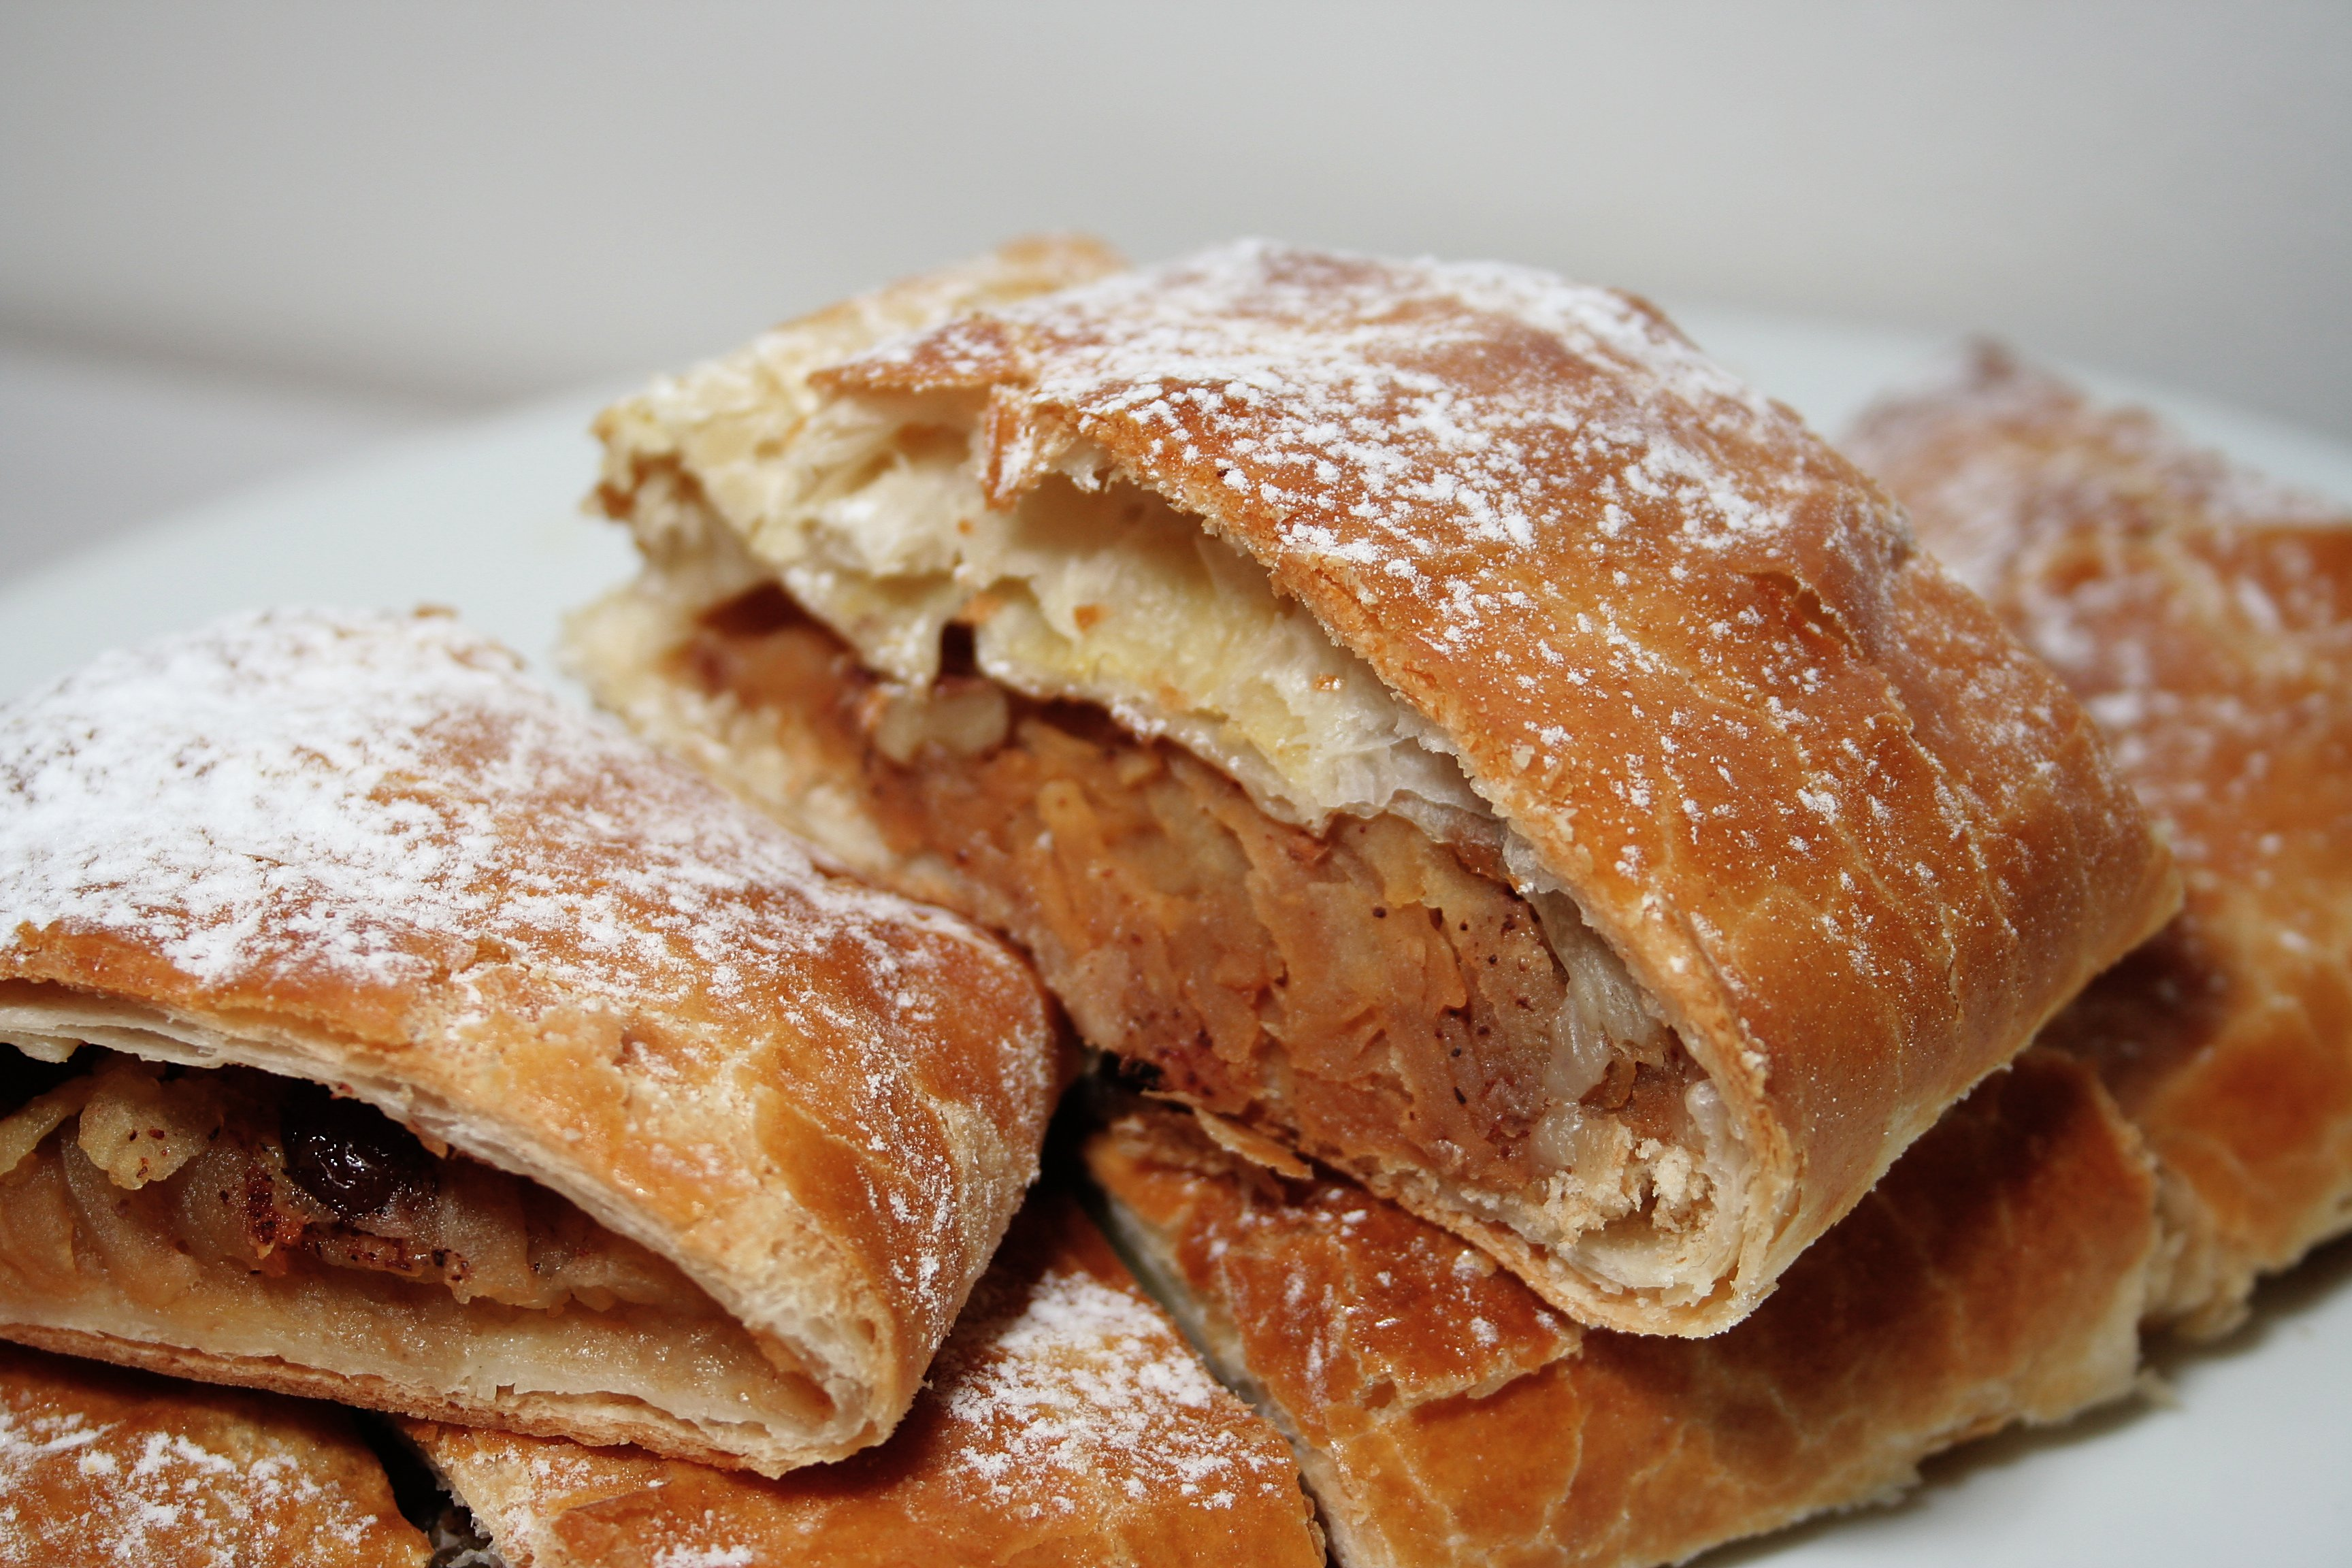 Apple strudel - Wikipedia, the free encyclopedia